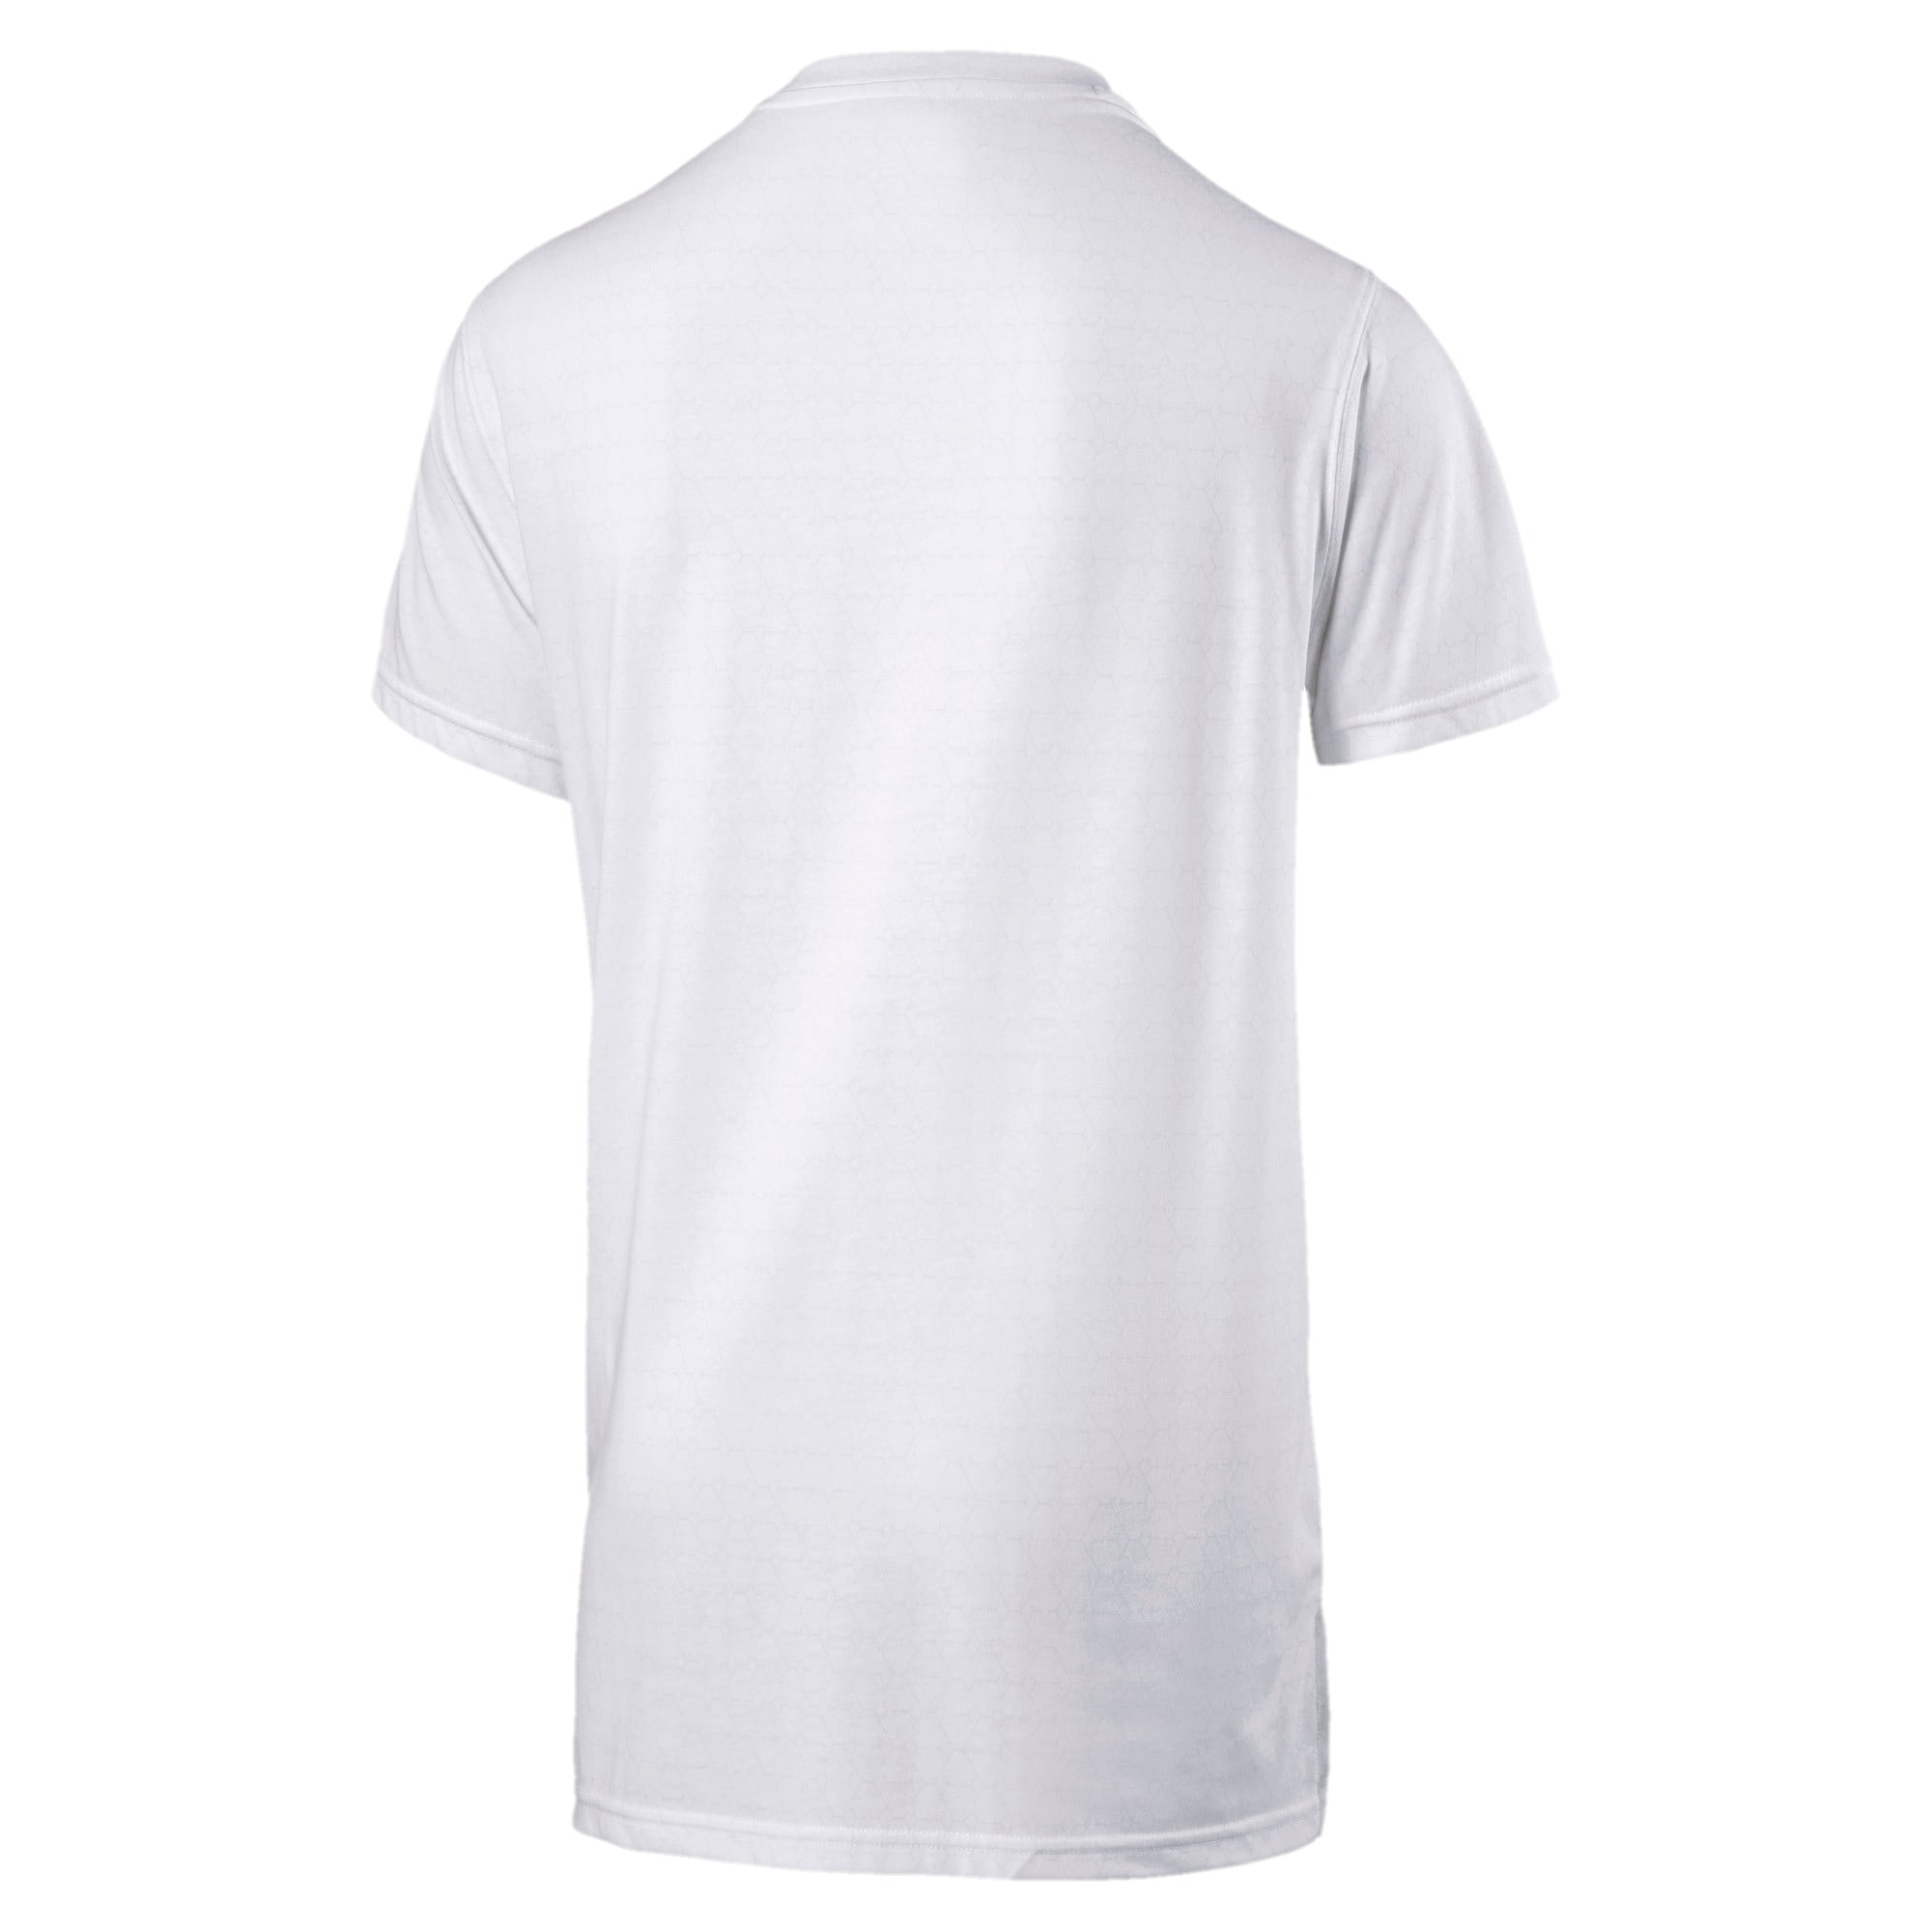 Thumbnail 5 of Energy Triblend Graphic Men's Running Tee, Puma White, medium-IND